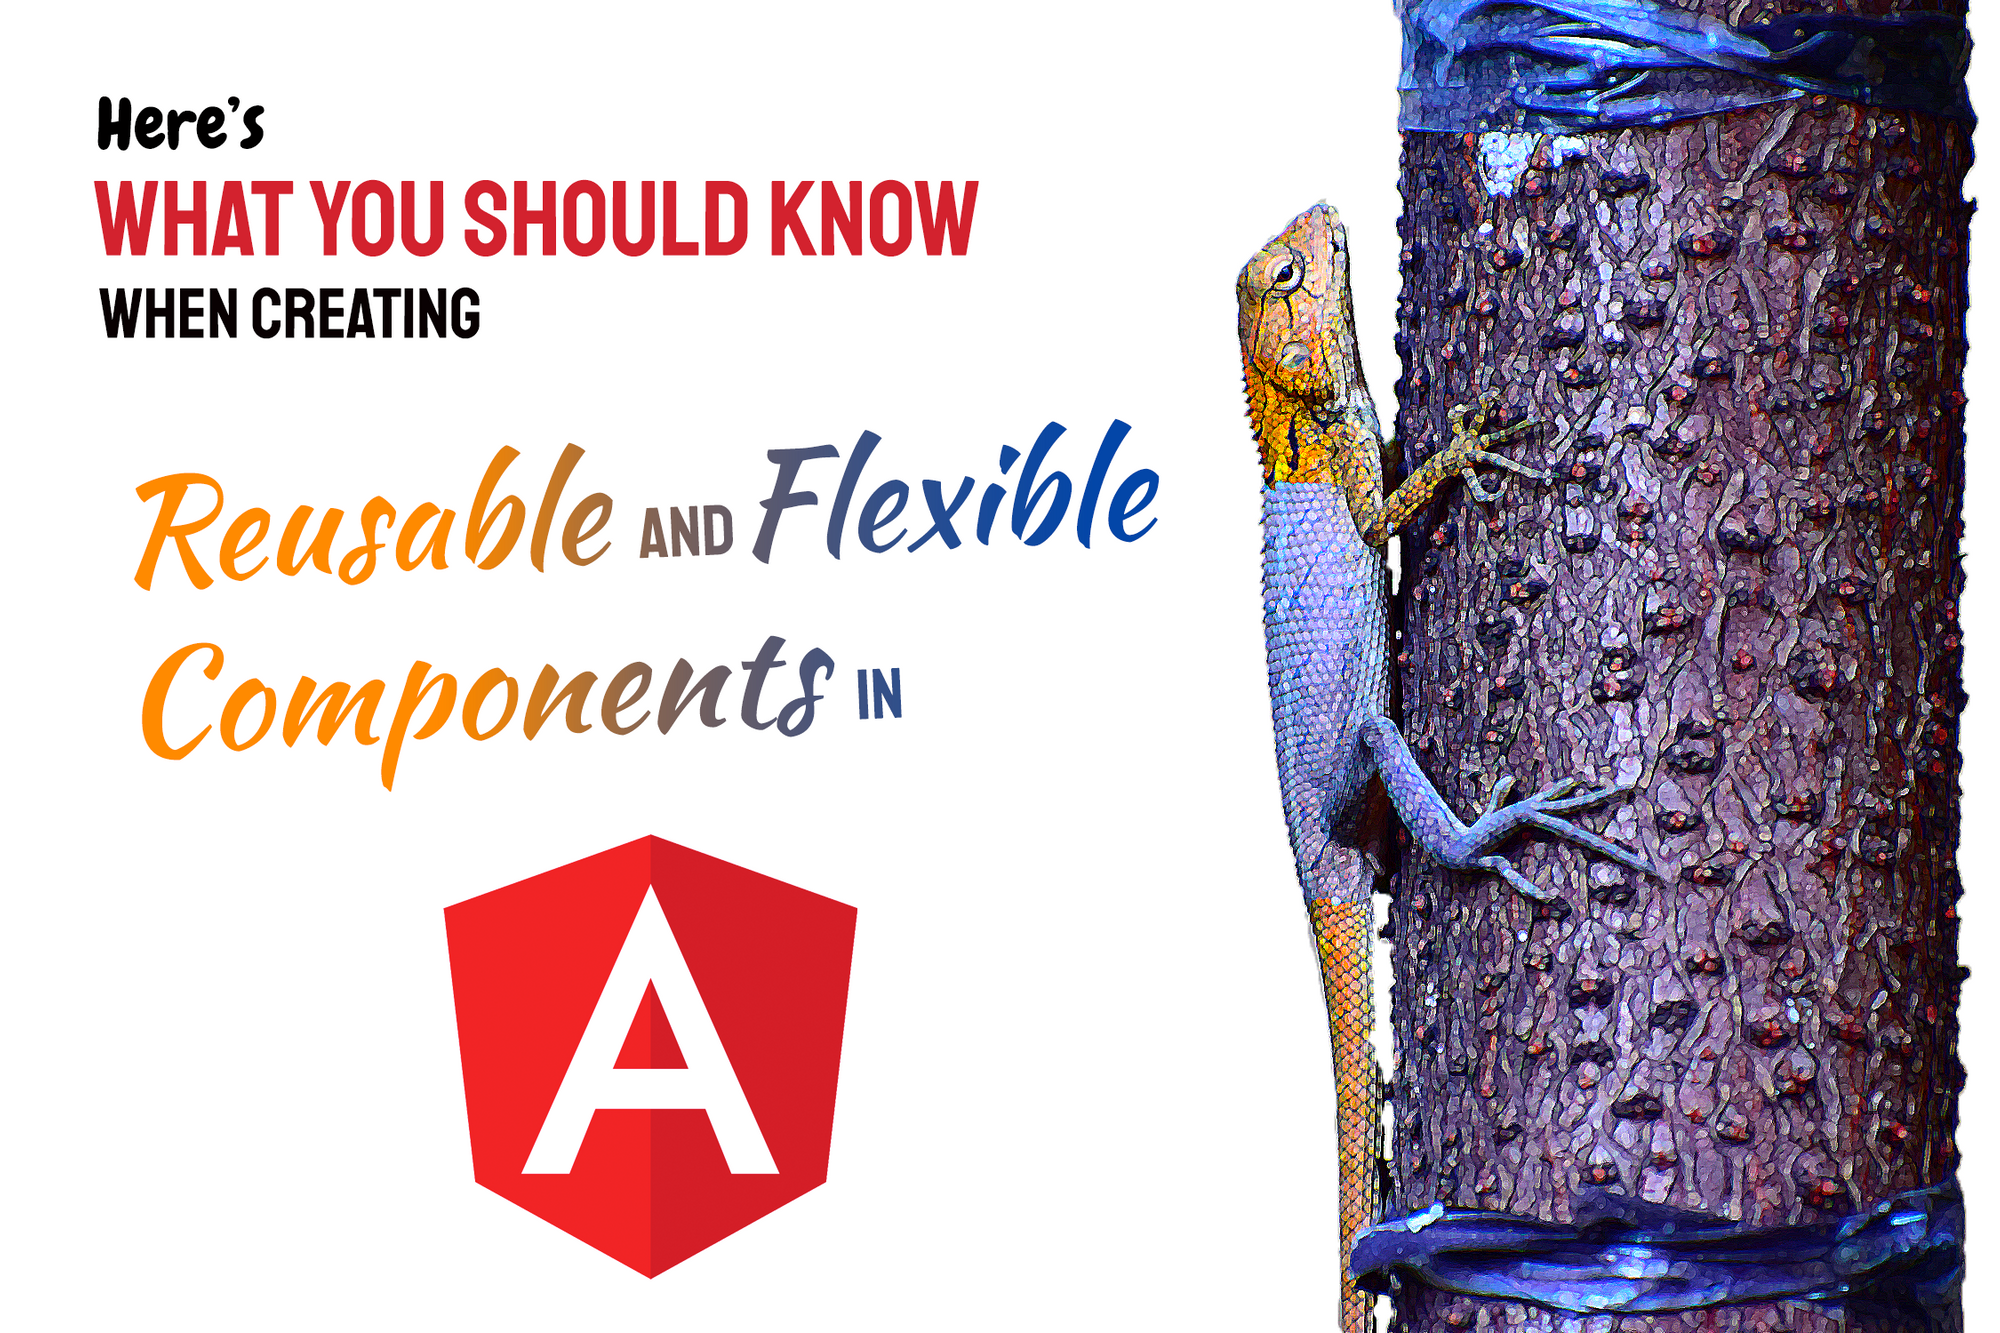 Here's what you should know when creating flexible and reusable components in Angular